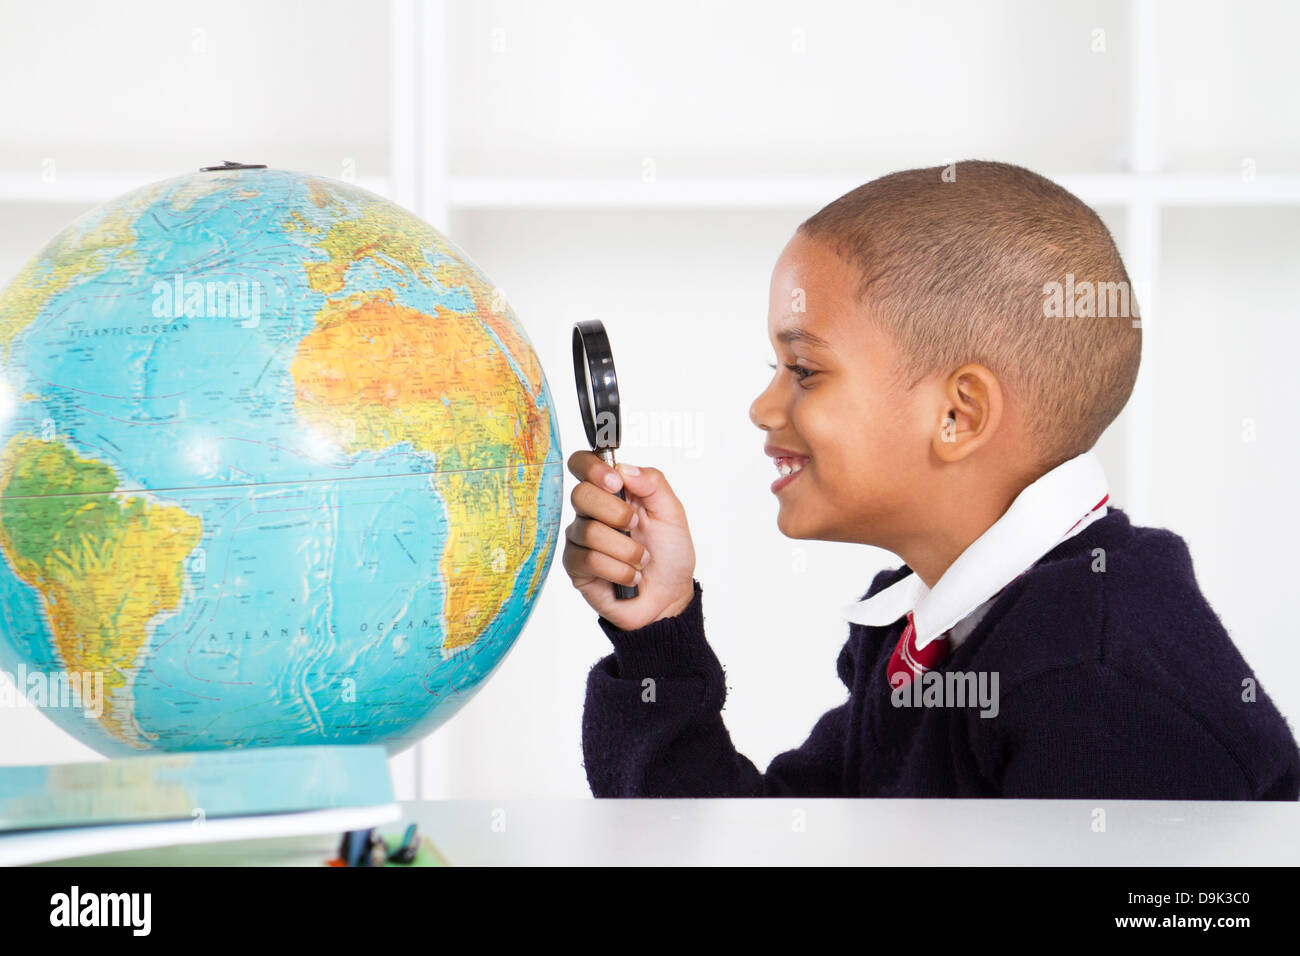 primary schoolboy using magnifying glass looking at globe - Stock Image